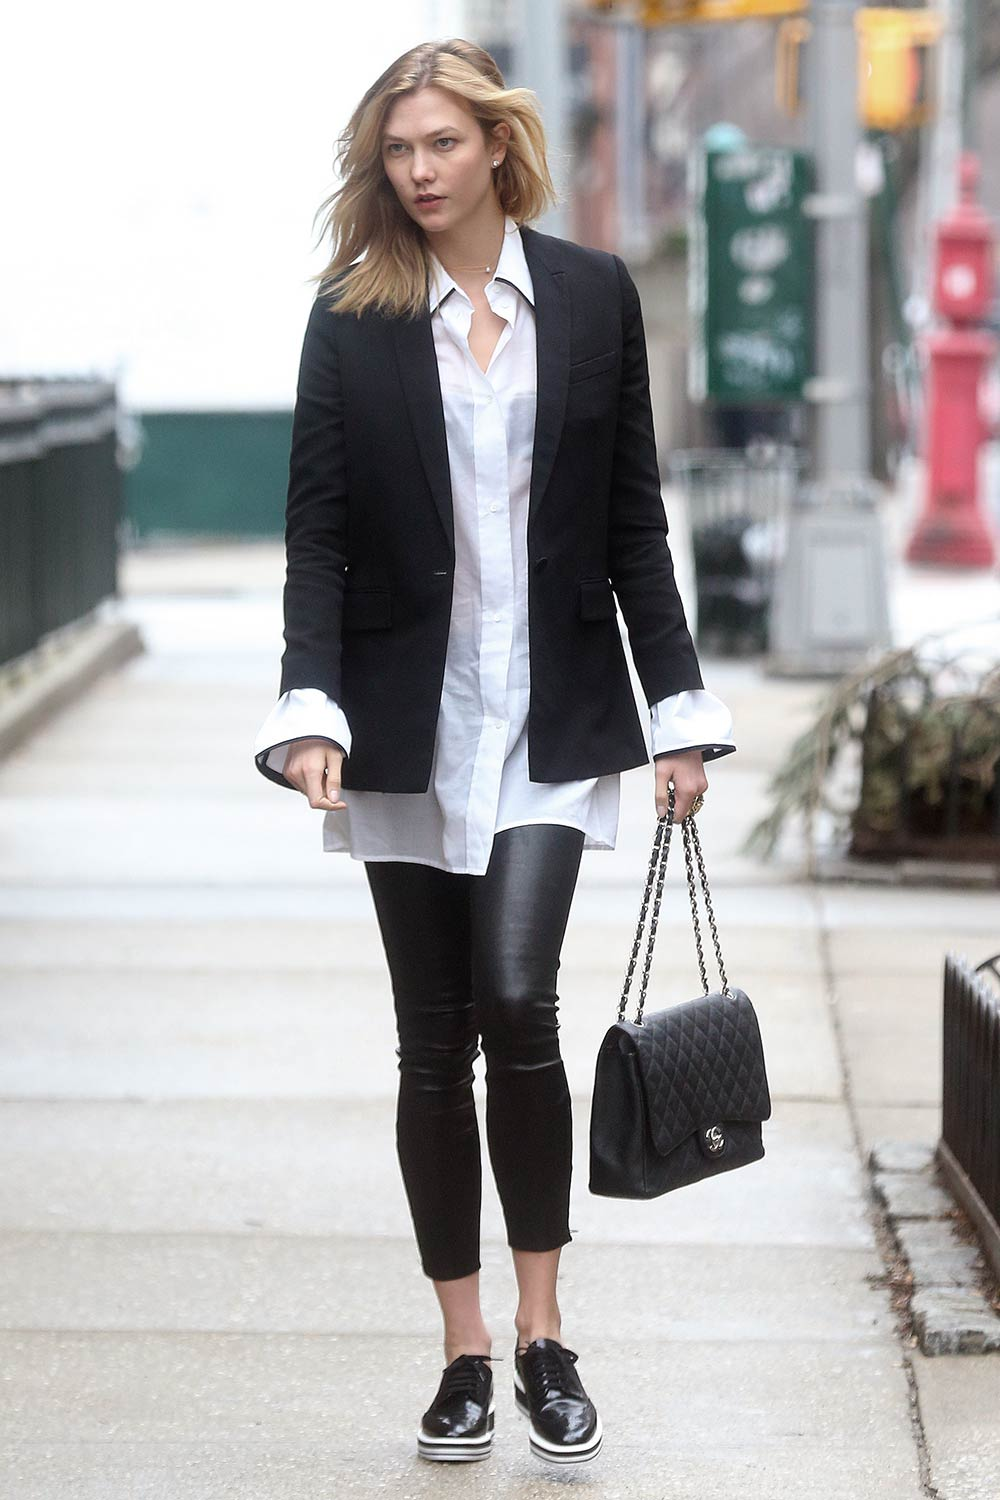 Karlie Kloss seen out and about in NYC